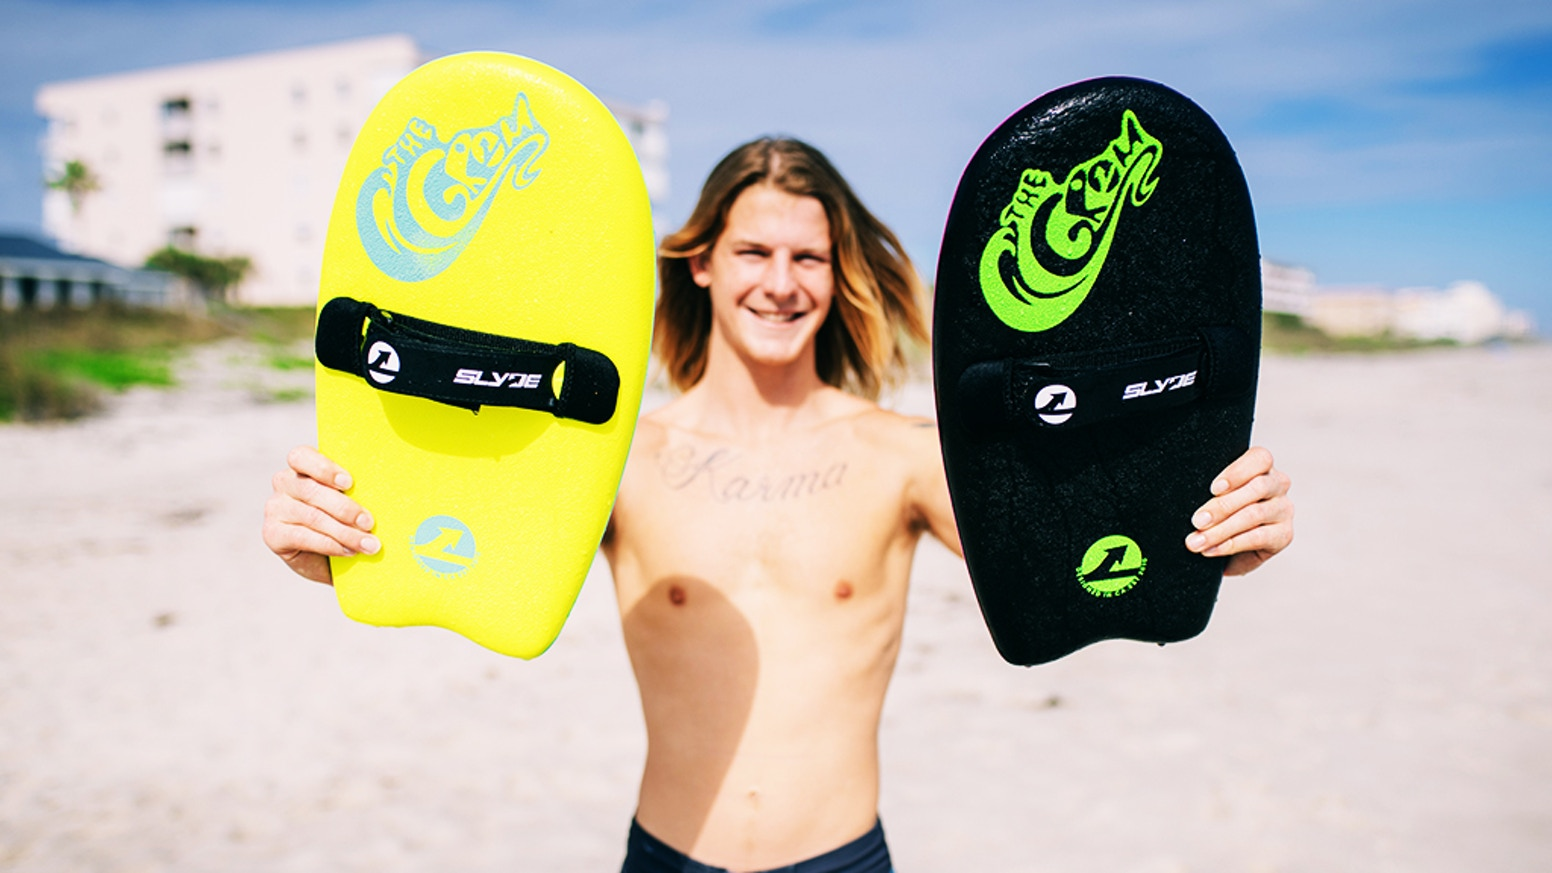 This will INSTANTLY be your new favorite surf toy. Safe, easy-to-learn, travel-friendly and fun for all ages and skill levels.